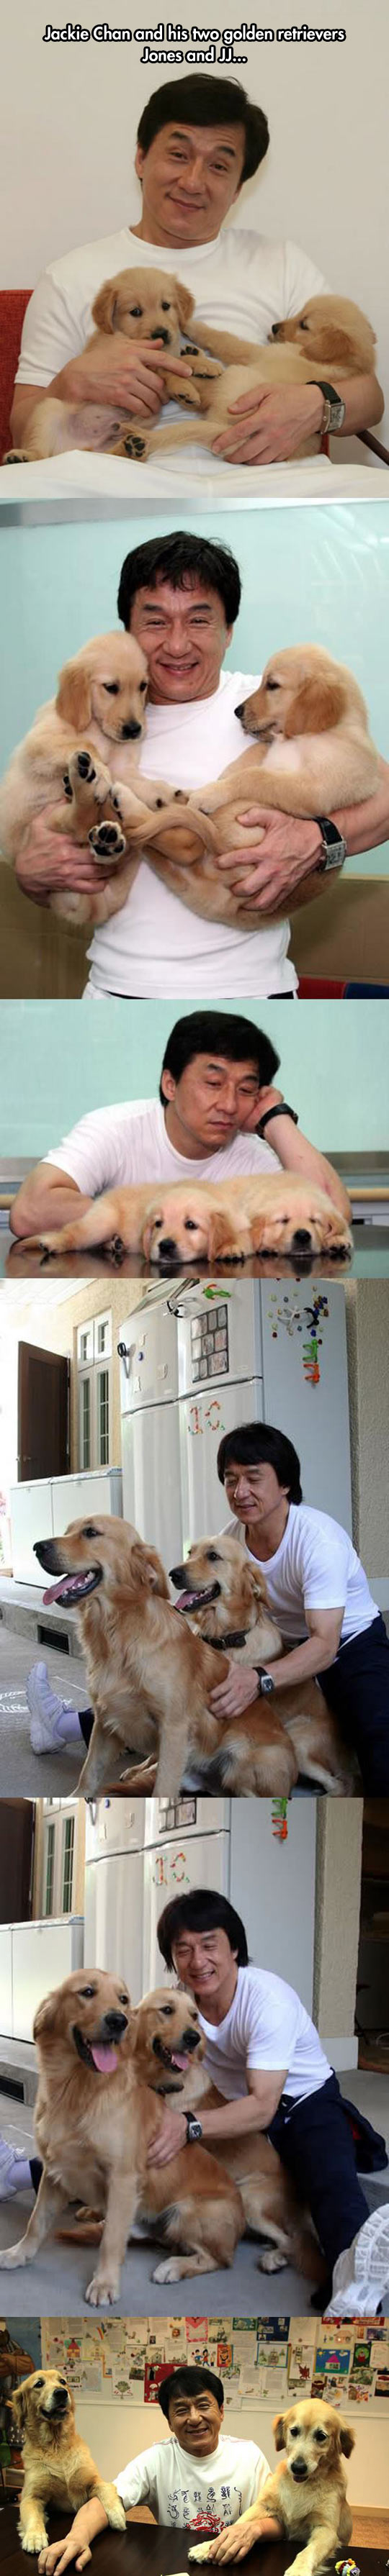 funny-Jackie-Chan-Golden-Retrievers